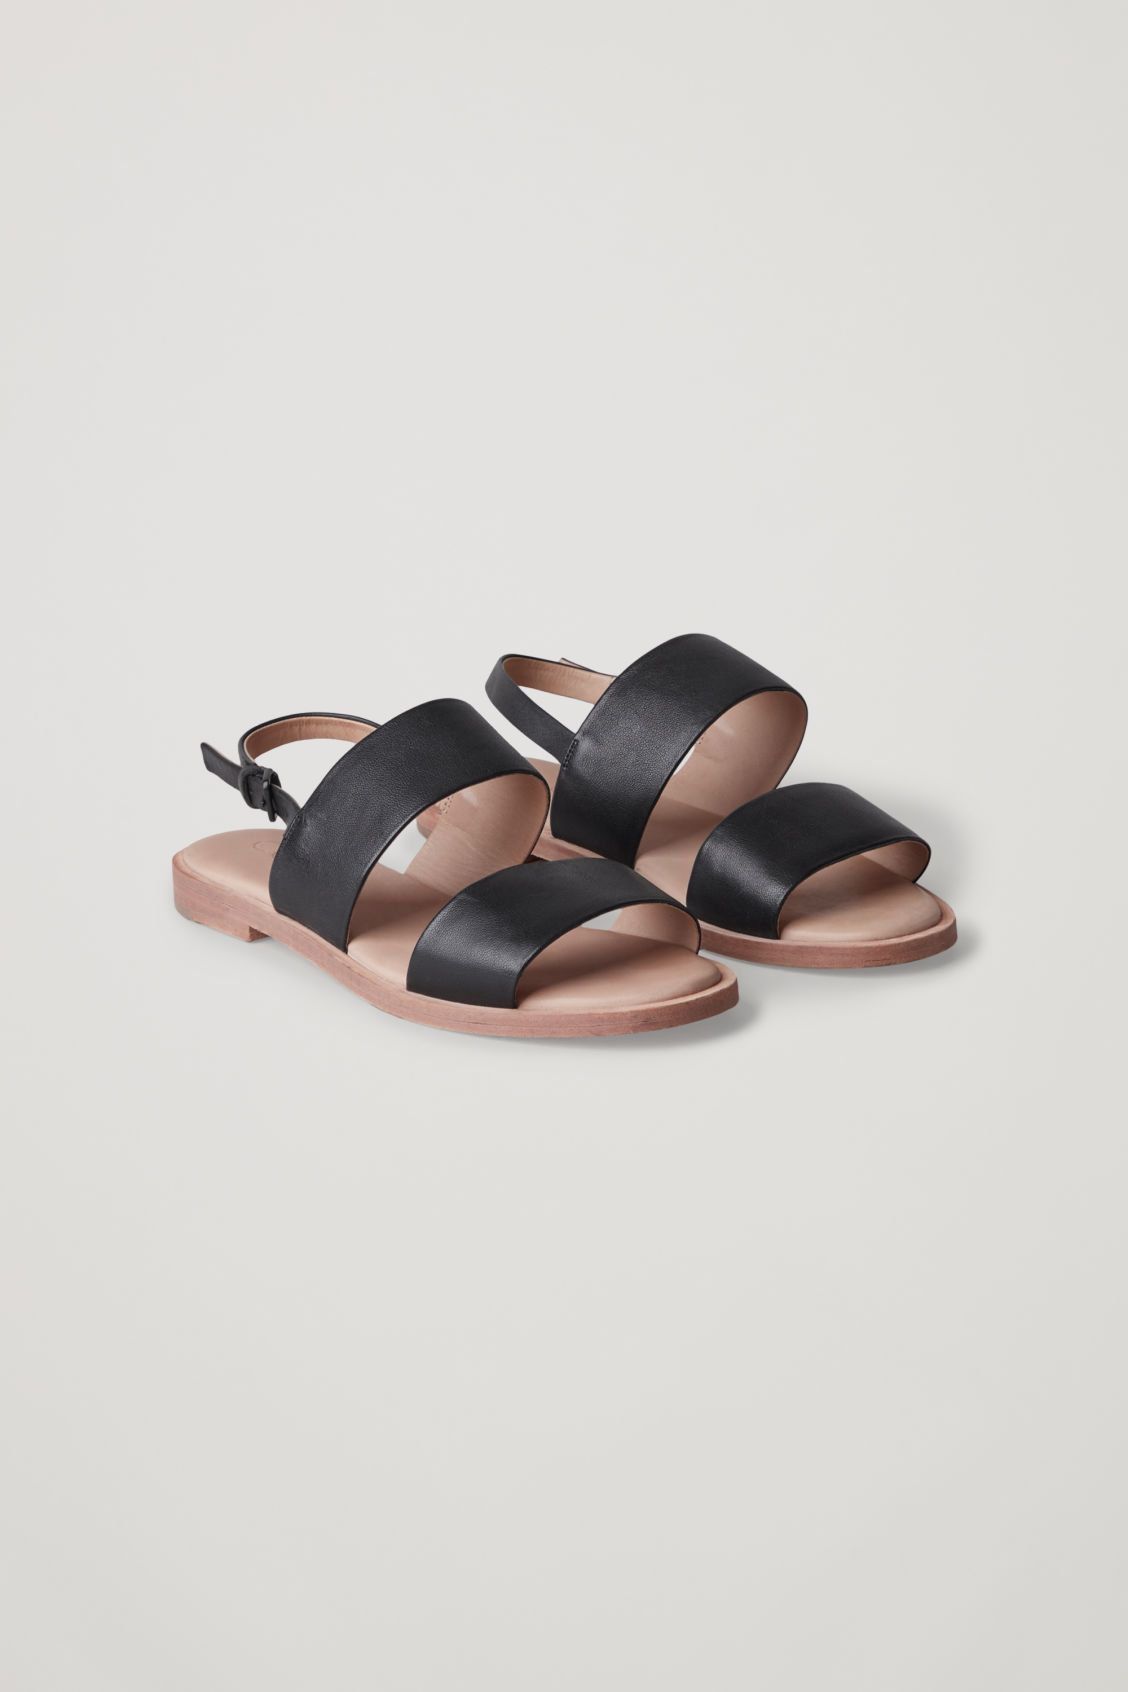 Front Image Of Cos Leather Strap Sandals In Black Leather Strap Sandals Shoes Strap Sandals